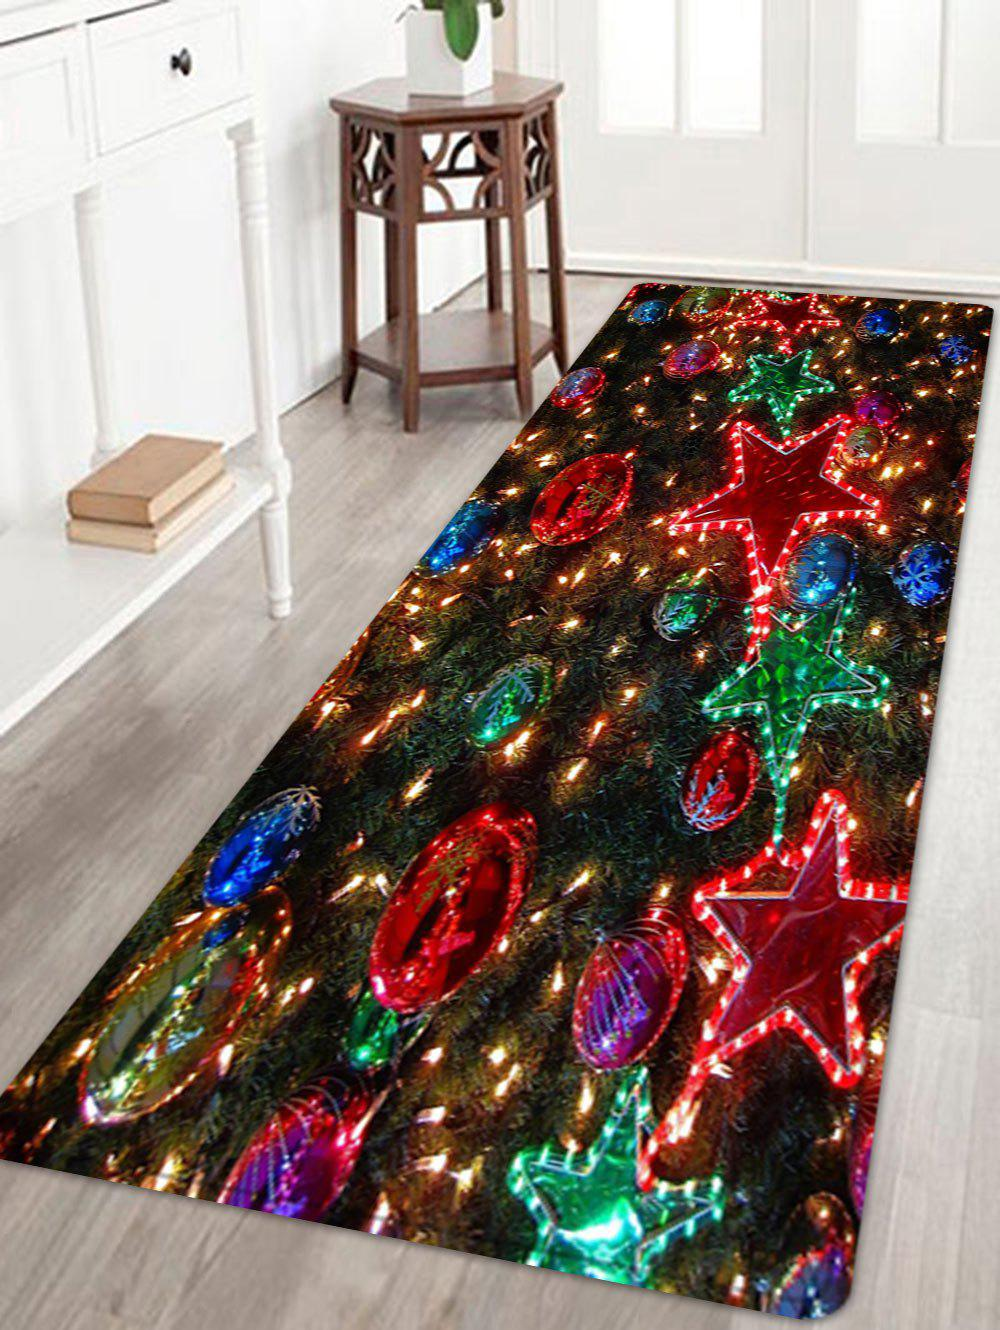 Christmas Star Balls Pattern Anti-skid Water Absorbing Area RugHOME<br><br>Size: W24 INCH * L71 INCH; Color: COLORMIX; Products Type: Bath rugs; Materials: Flannel; Pattern: Ball,Star; Style: Festival; Shape: Rectangle; Package Contents: 1 x Rug;